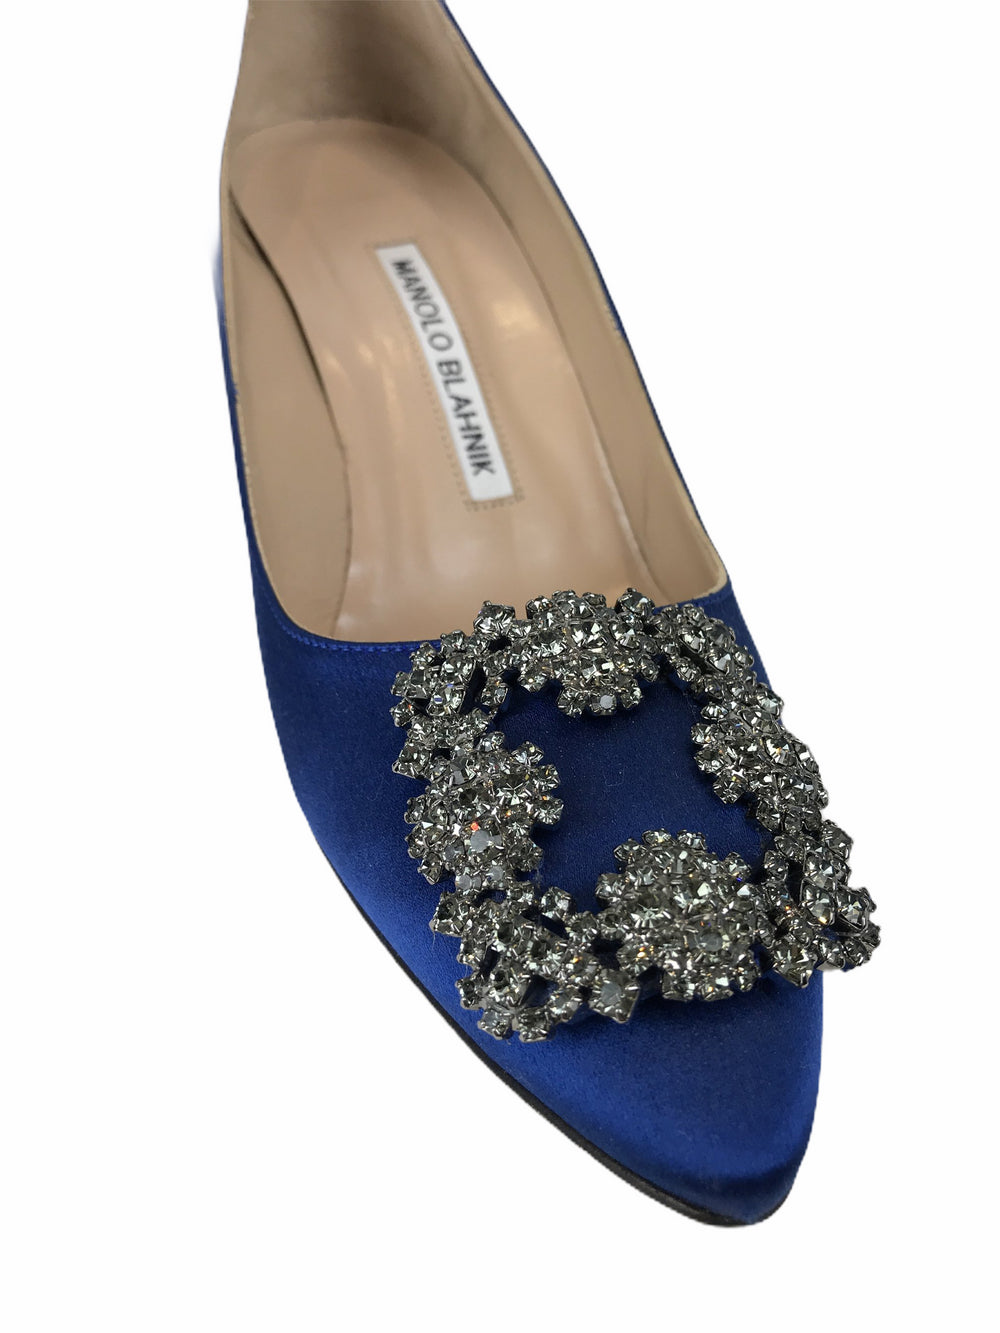 Manolo Blahnik Blue Satin Heels - UK 3.5